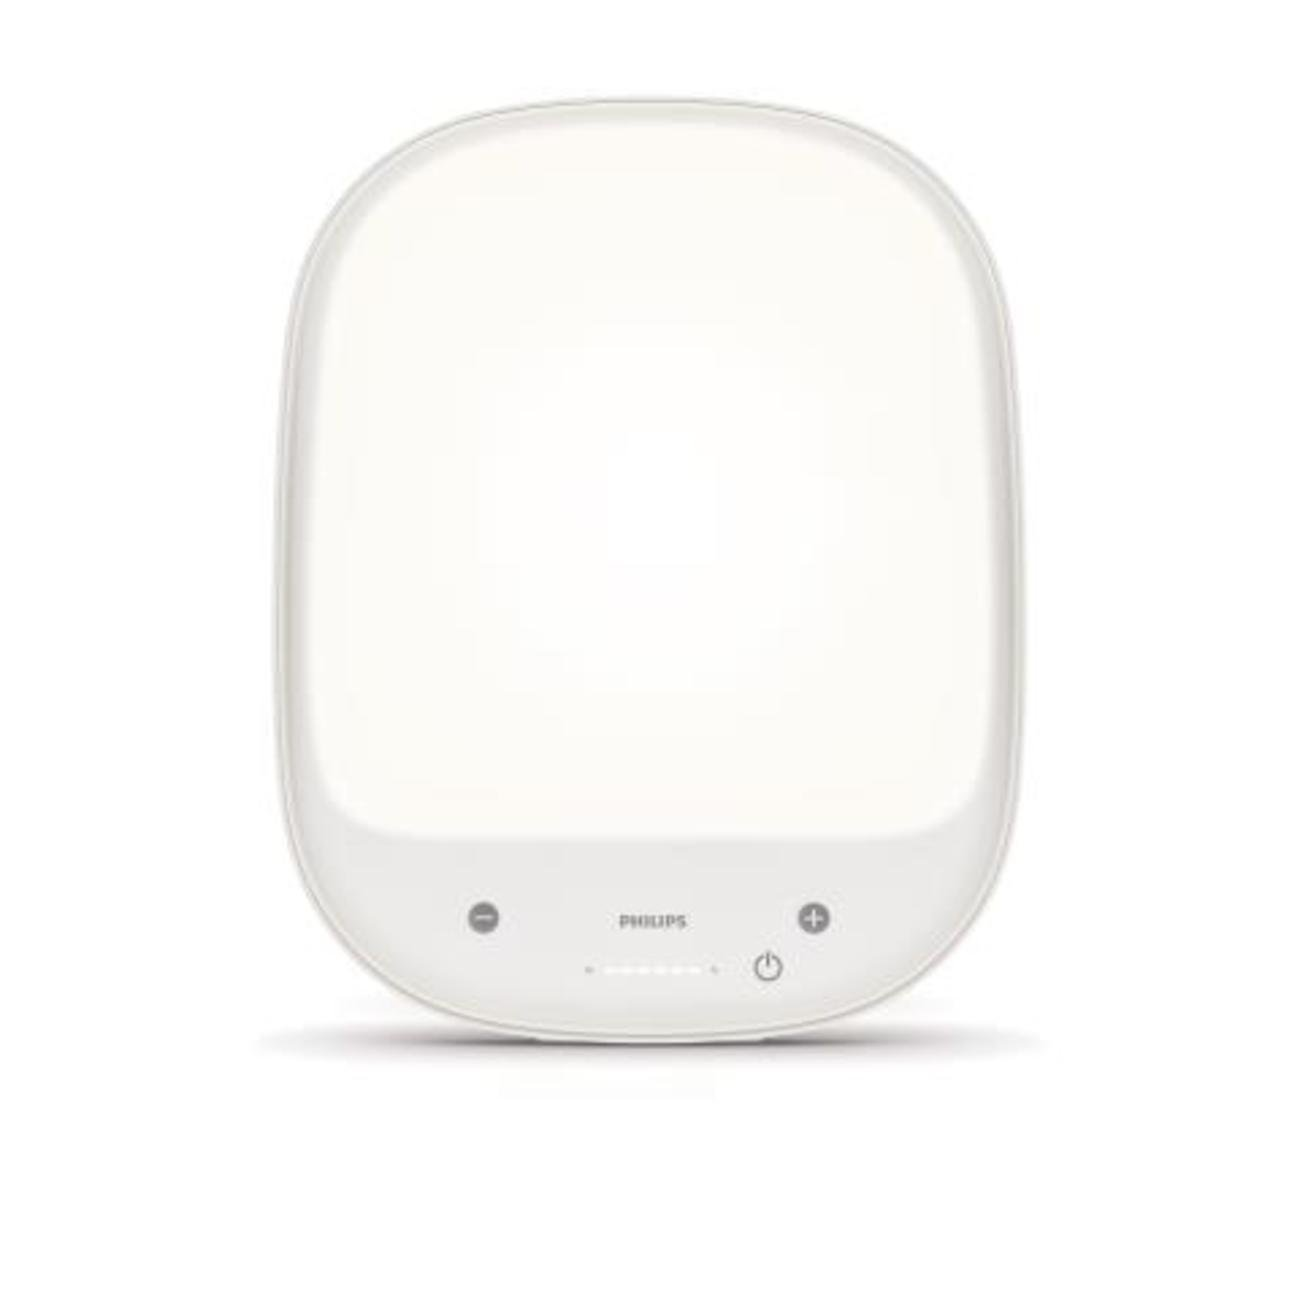 Philips Natural Energy White Light Therapy Medical Grade, White/Silver HF3418/60 by Philips (Image #1)